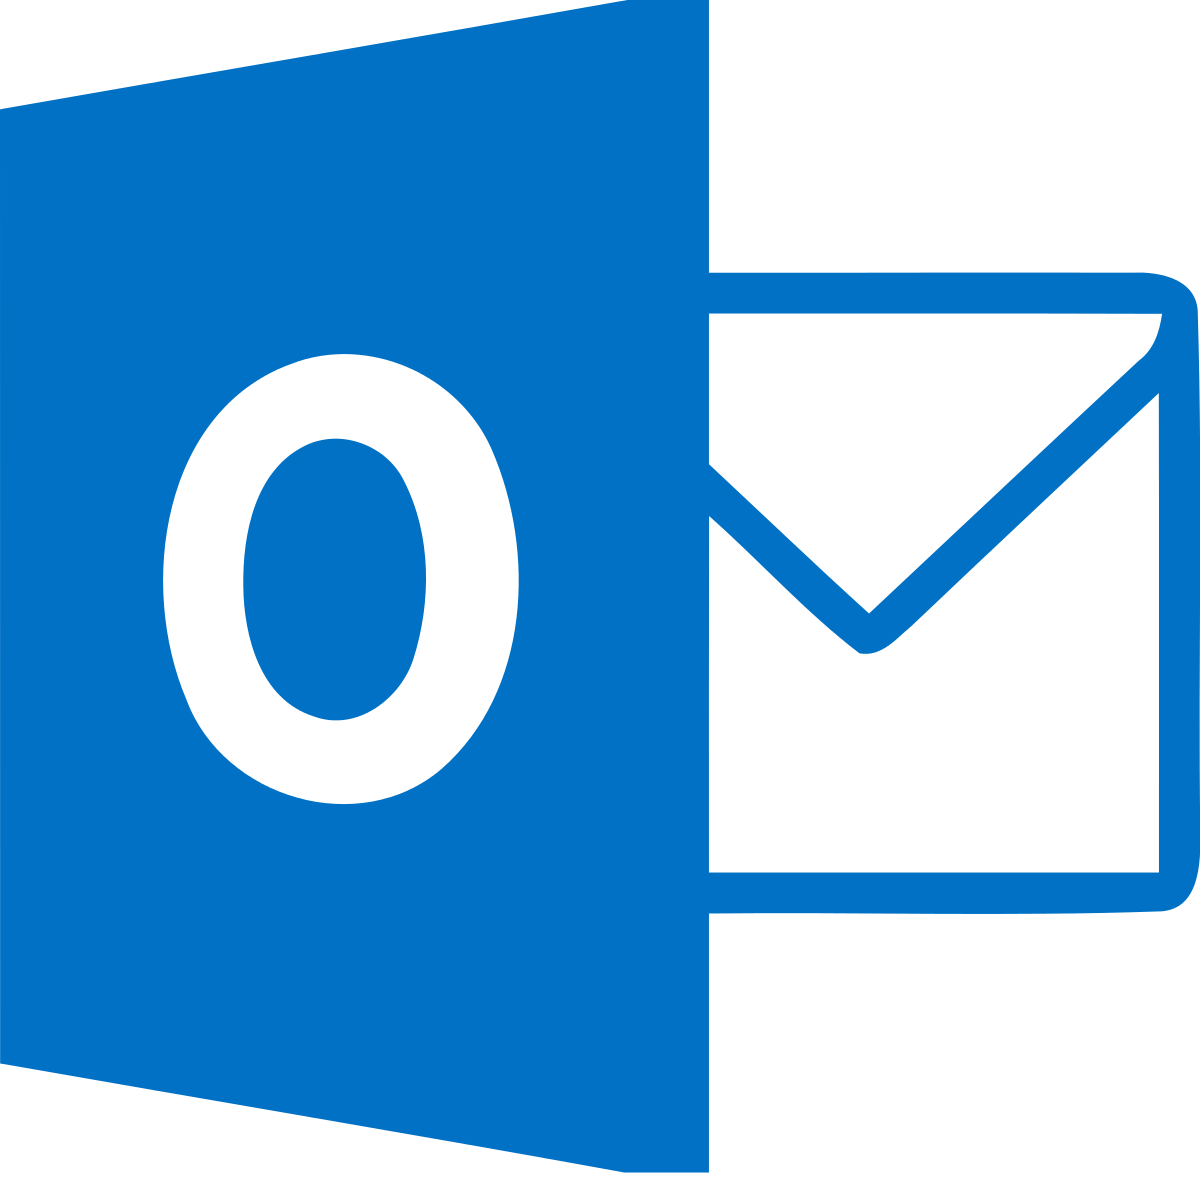 microsoft outlook png logo #4821